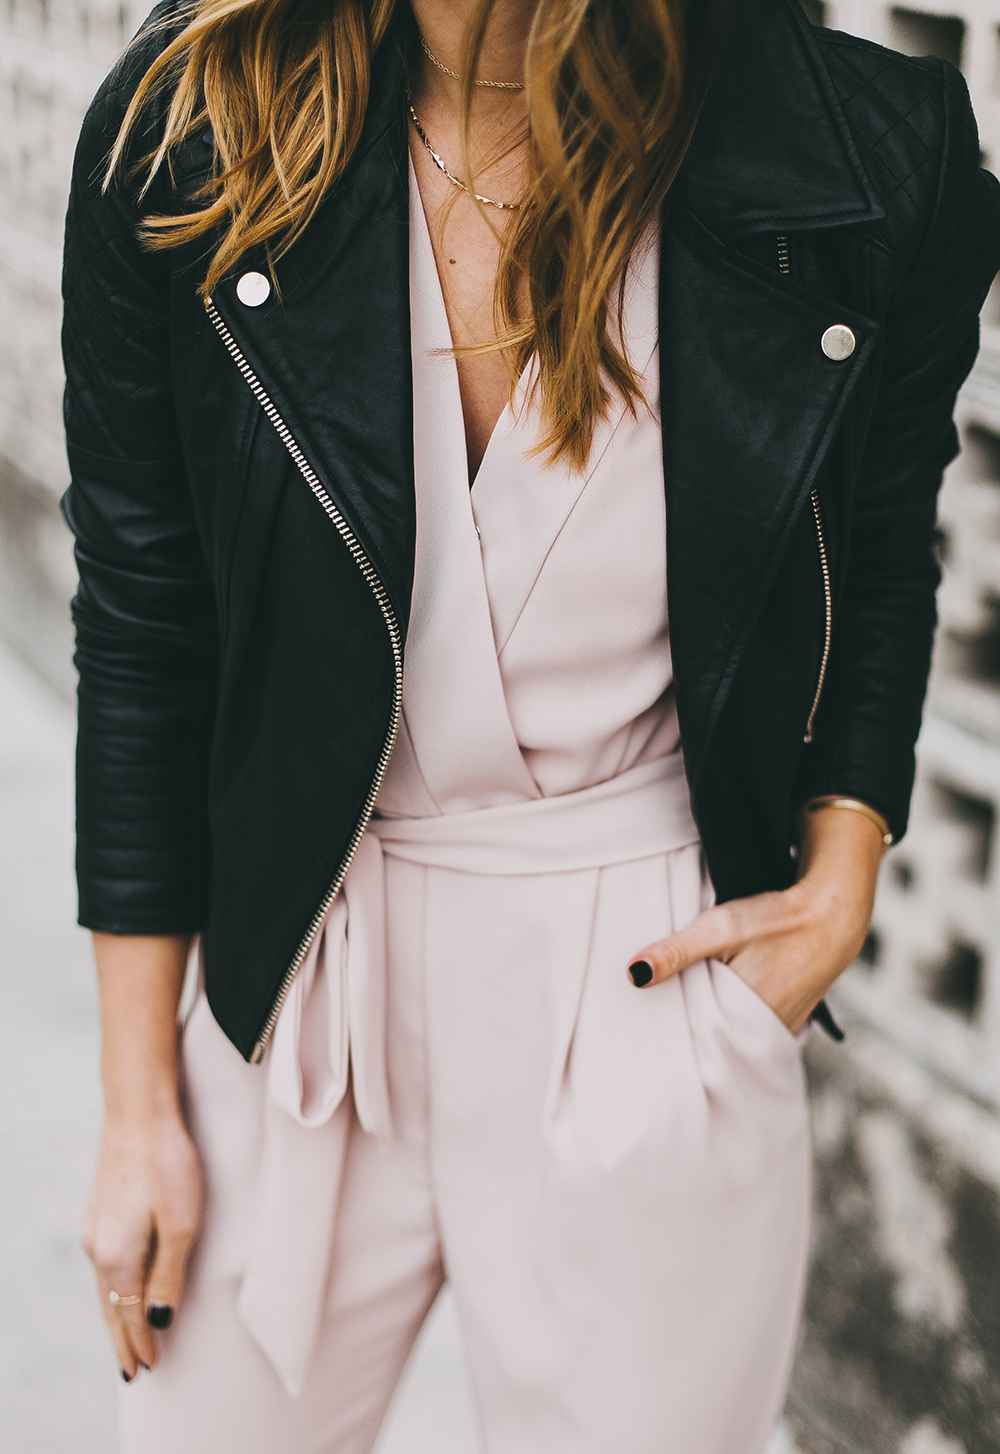 livvyland-river-island-blush-pink-jumpsuit-black-leather-jacket-holiday-party-nye-outfit-inspiration-ideas-6